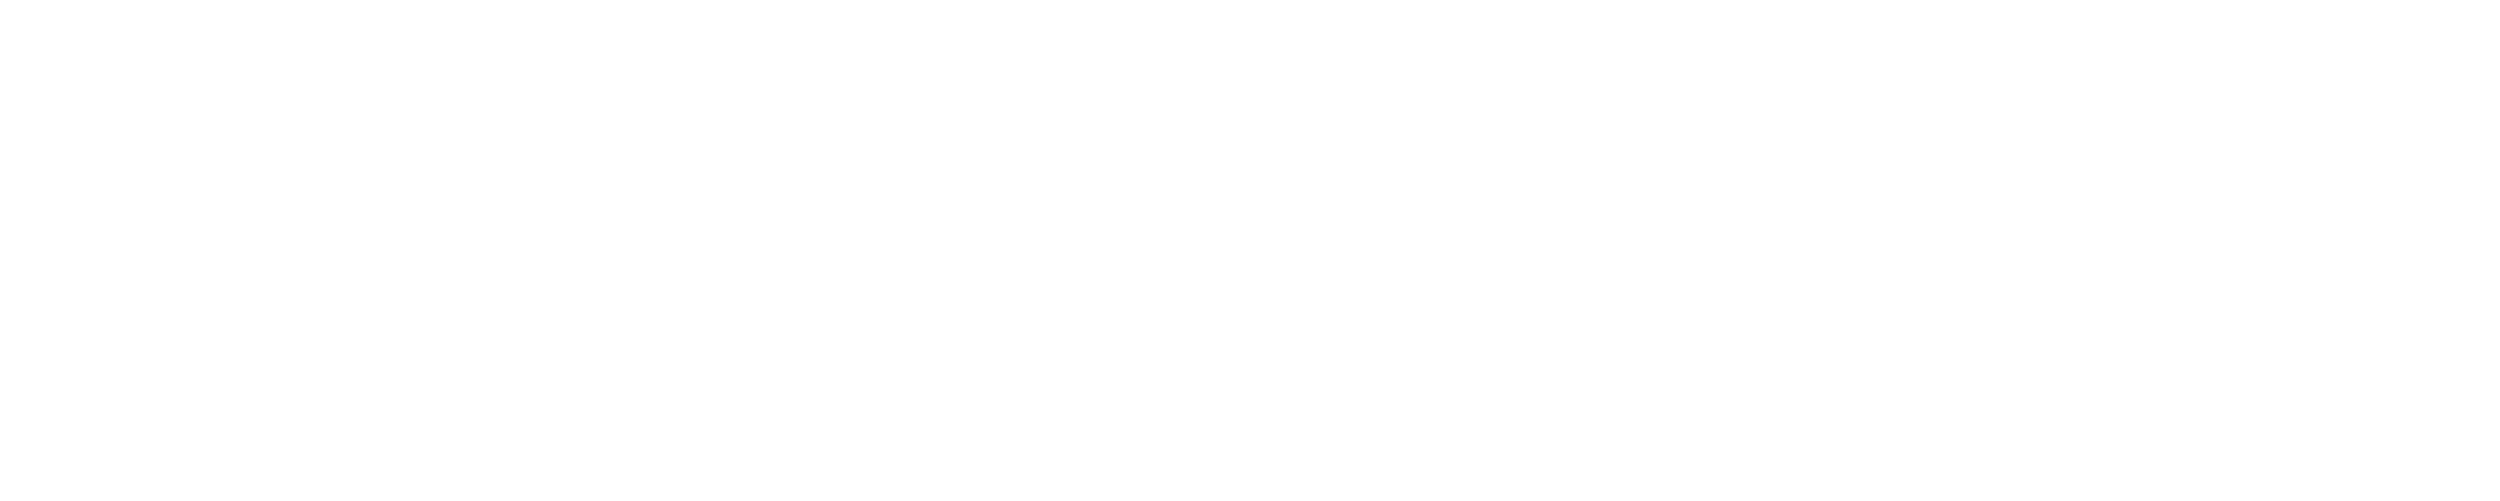 WELCOME-01-01.png